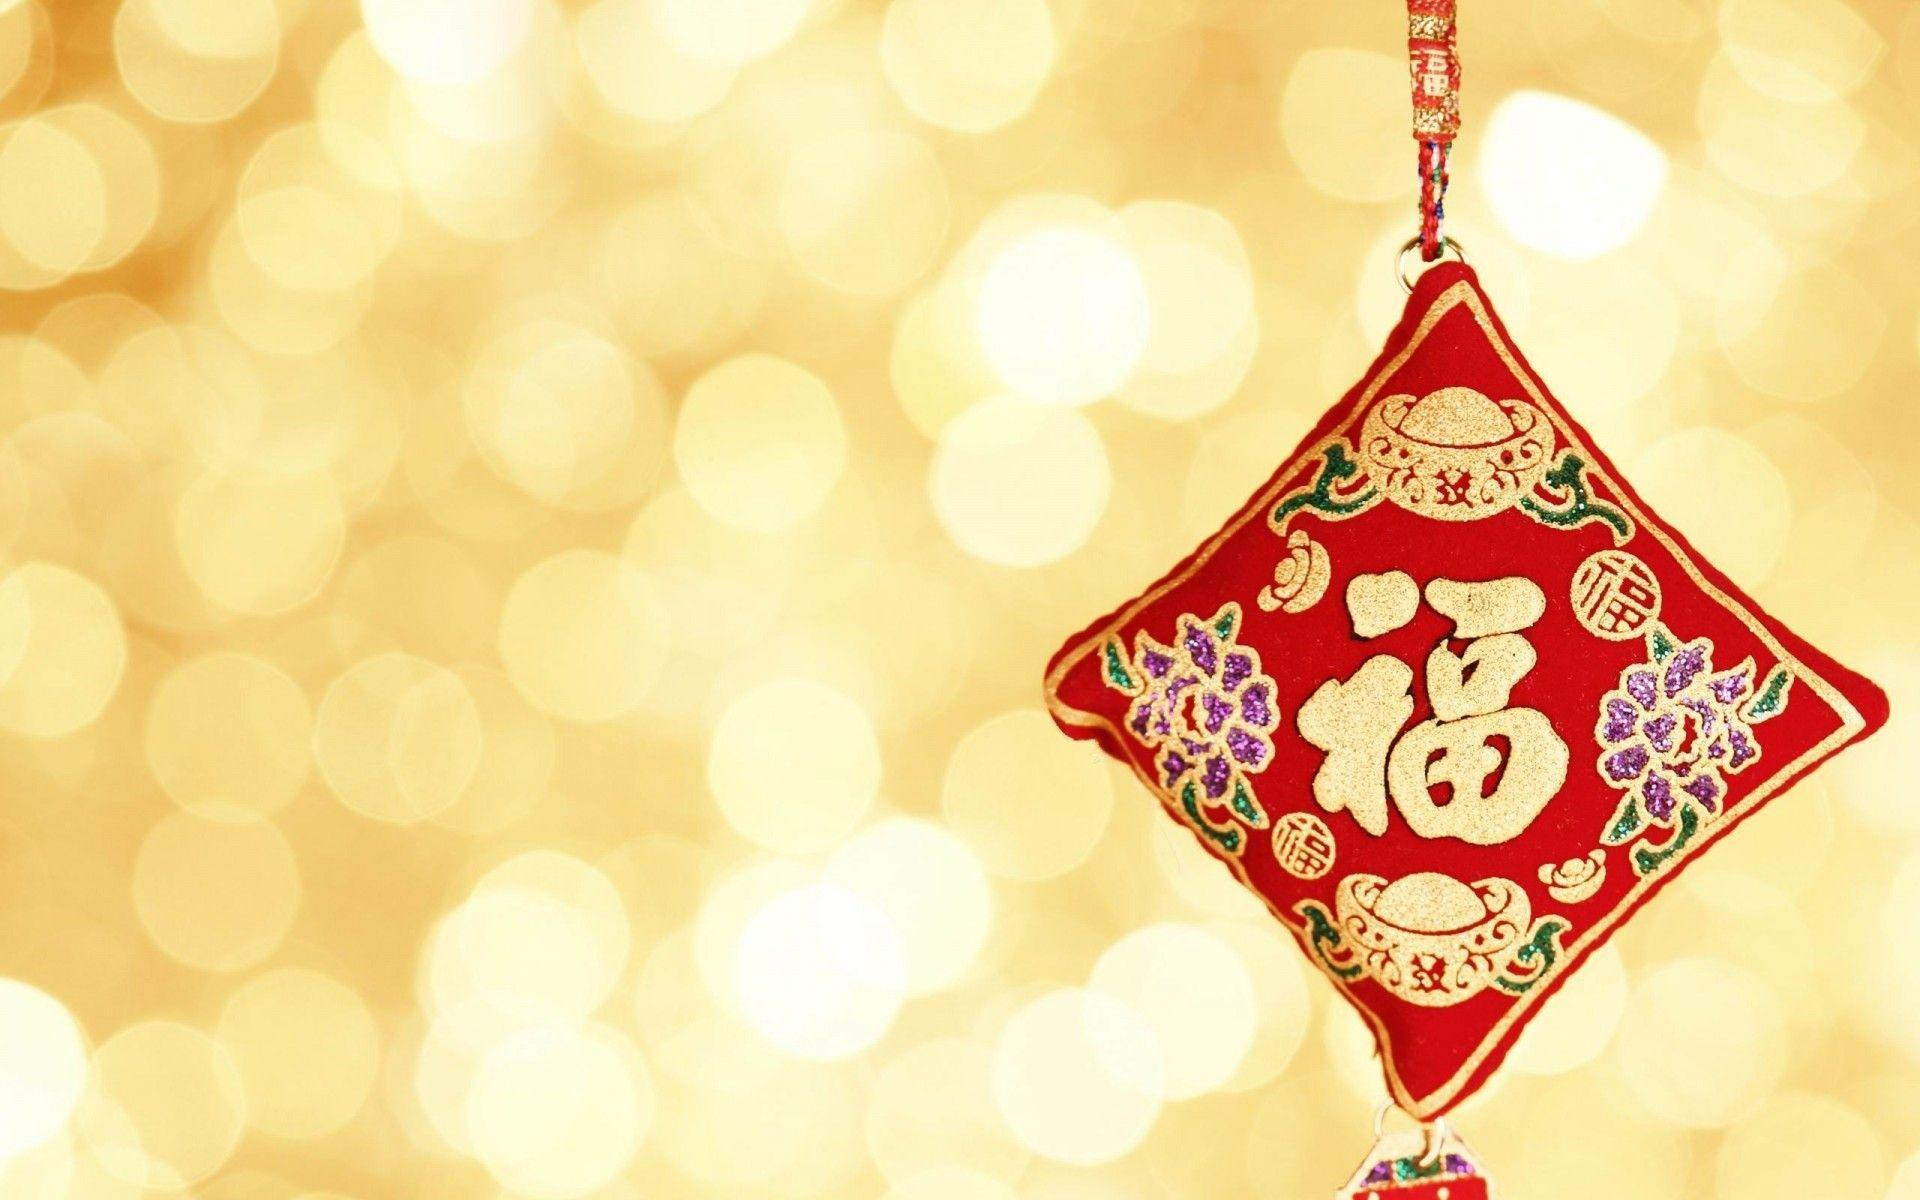 chinese new year wallpaper hd hd wallpapers backgrounds images